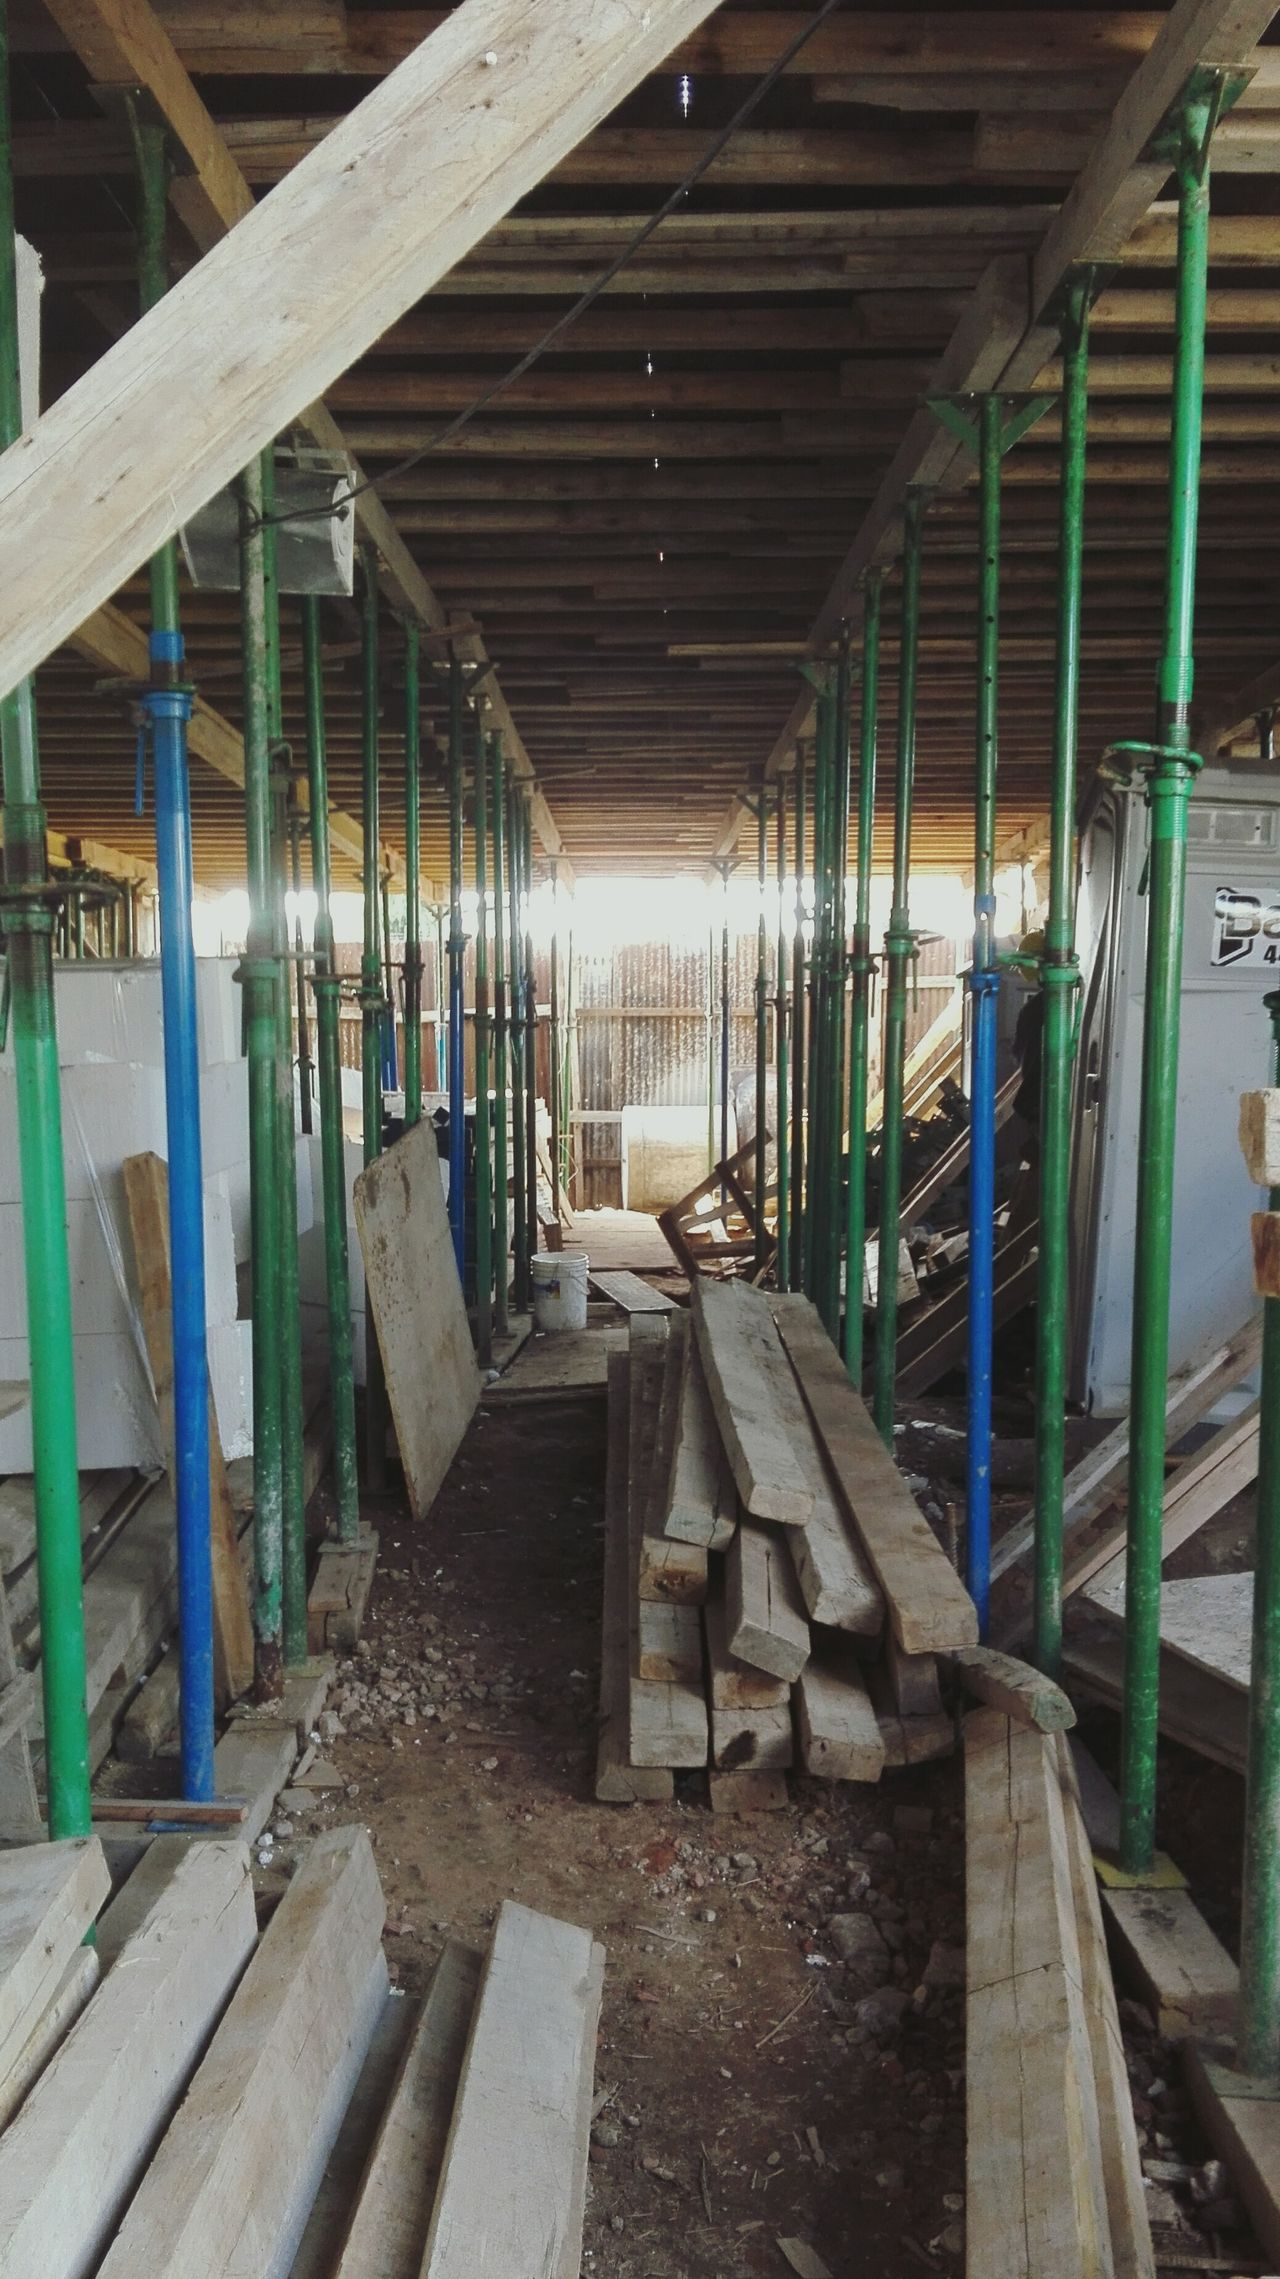 No People Built Structure The Way Forward Indoors  Construction Site Construction Construction Work Green Day